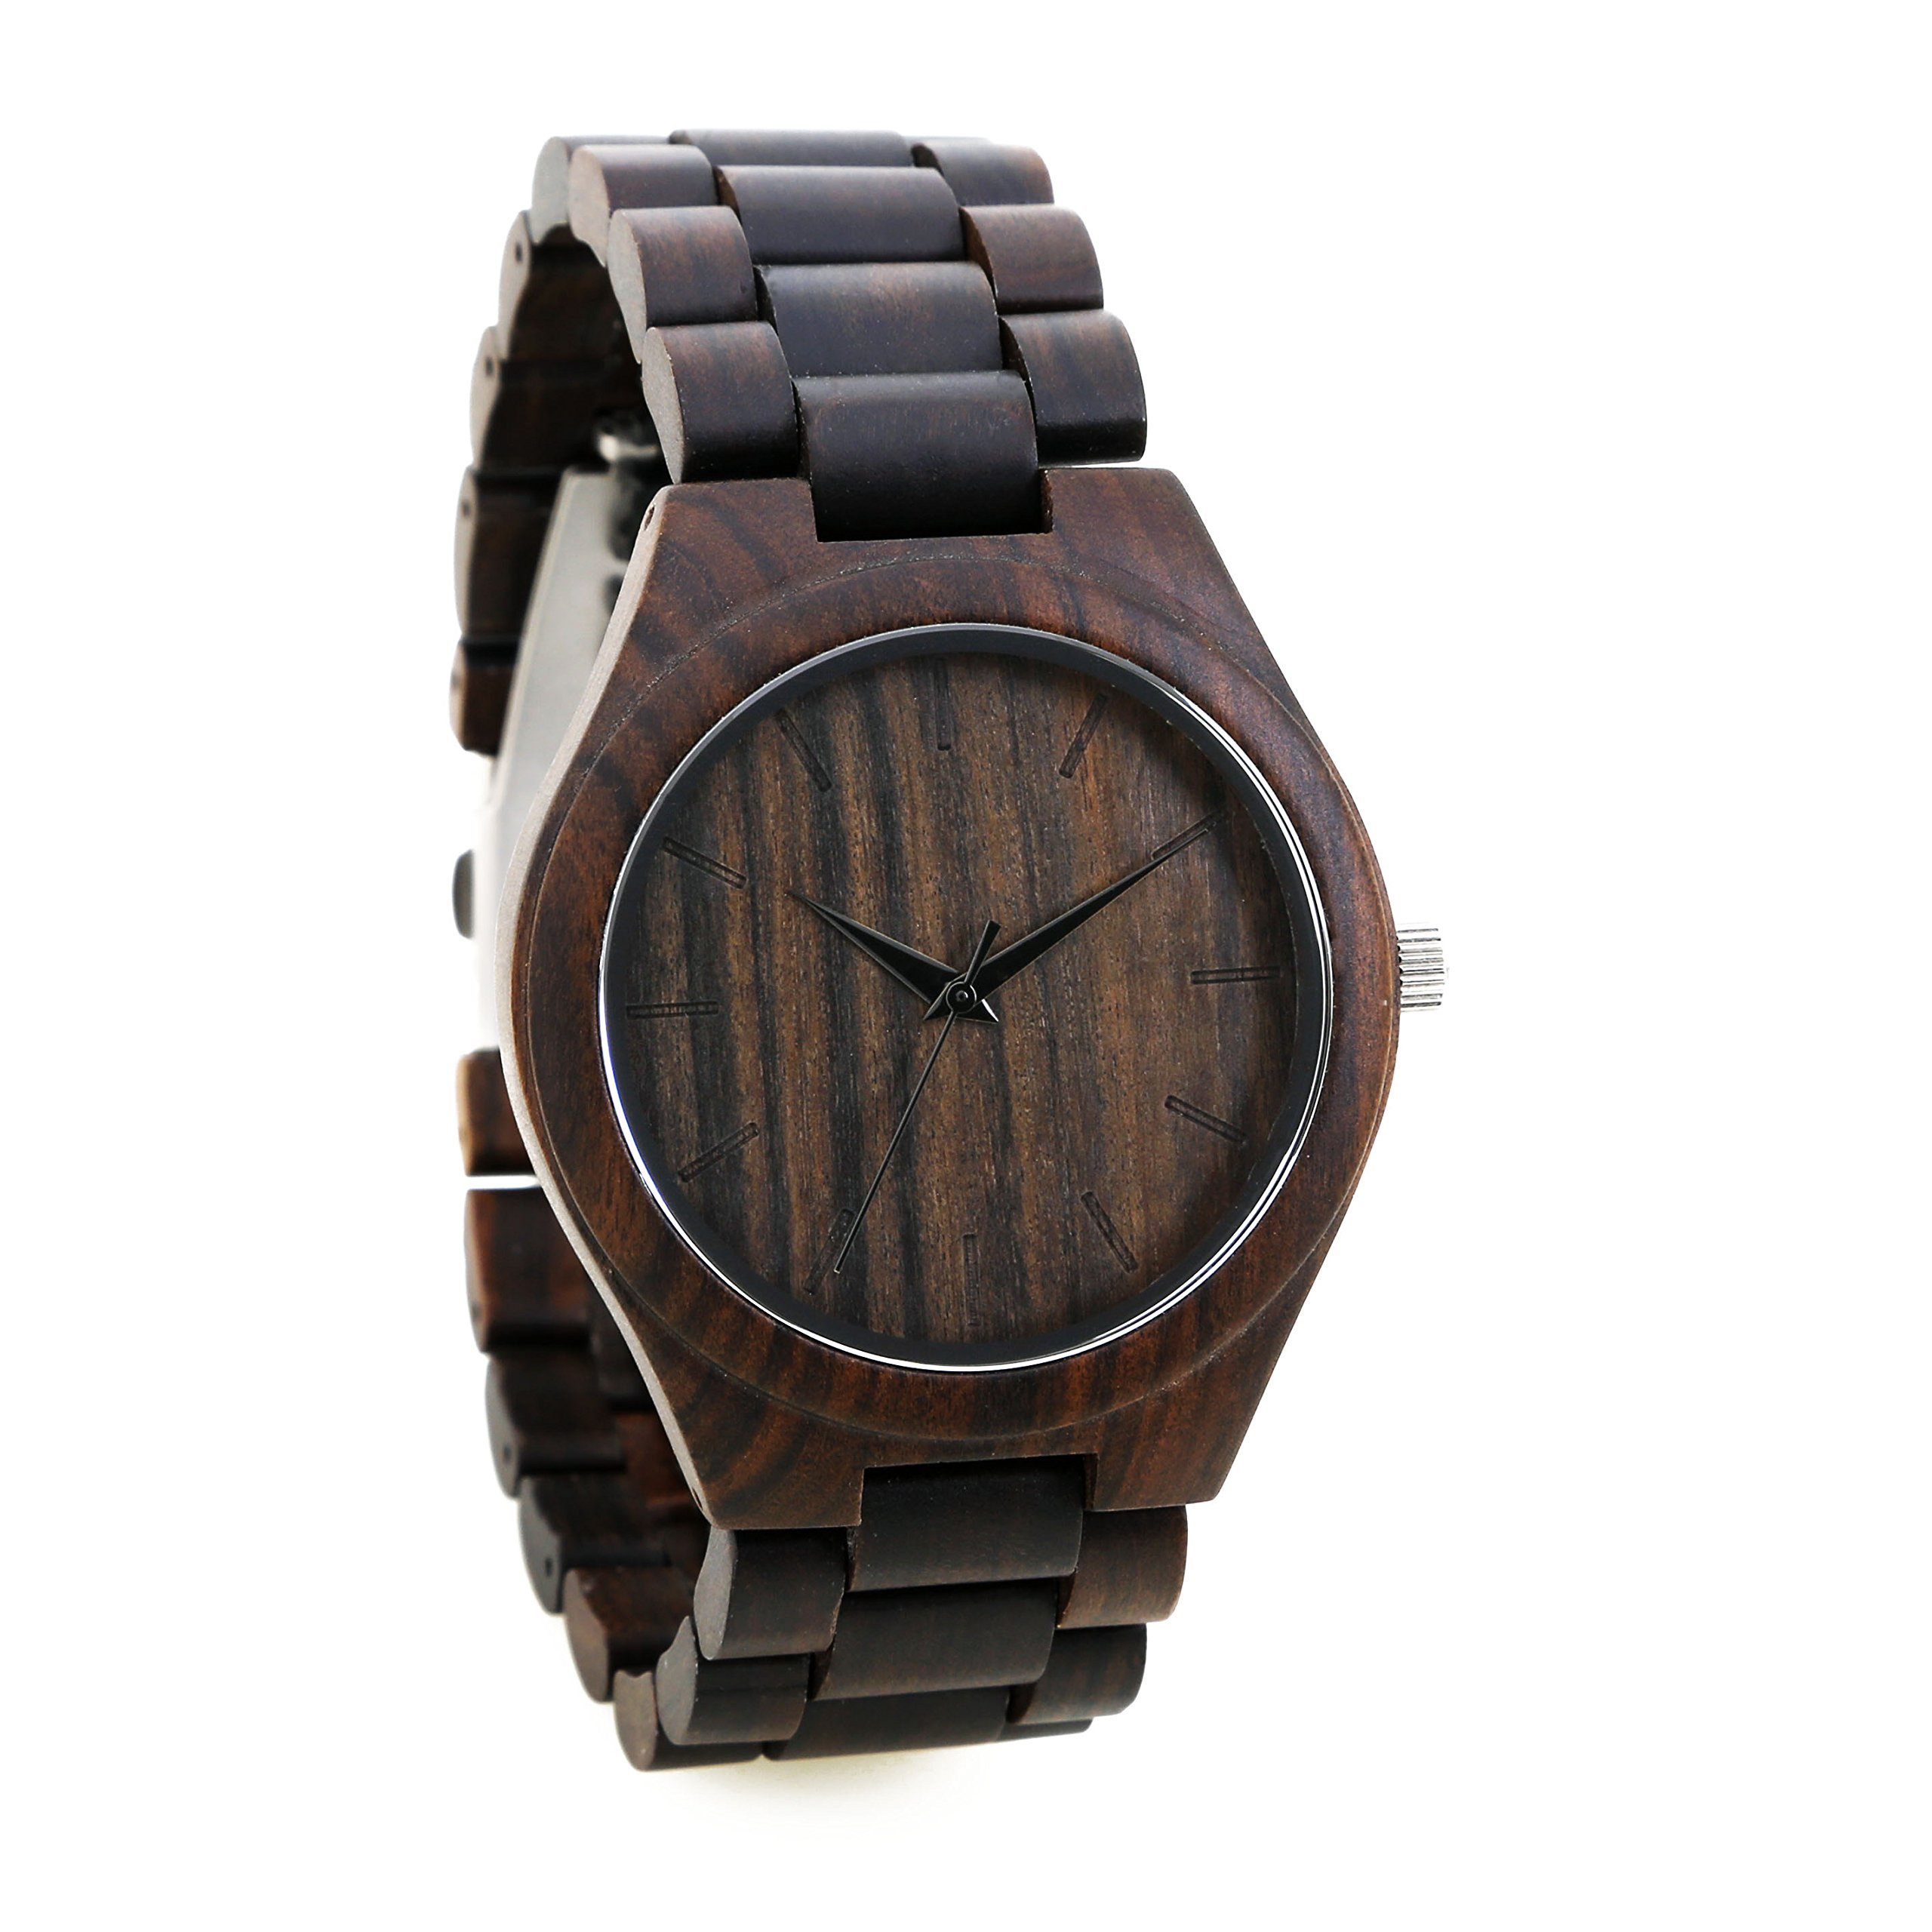 Personalized Engraved Wooden Watch Custom Wood Watch Groomsman Gift Fathers Day Gift Anniversary Wedding Gift Engraved All Natural Wood- Free Gift Box